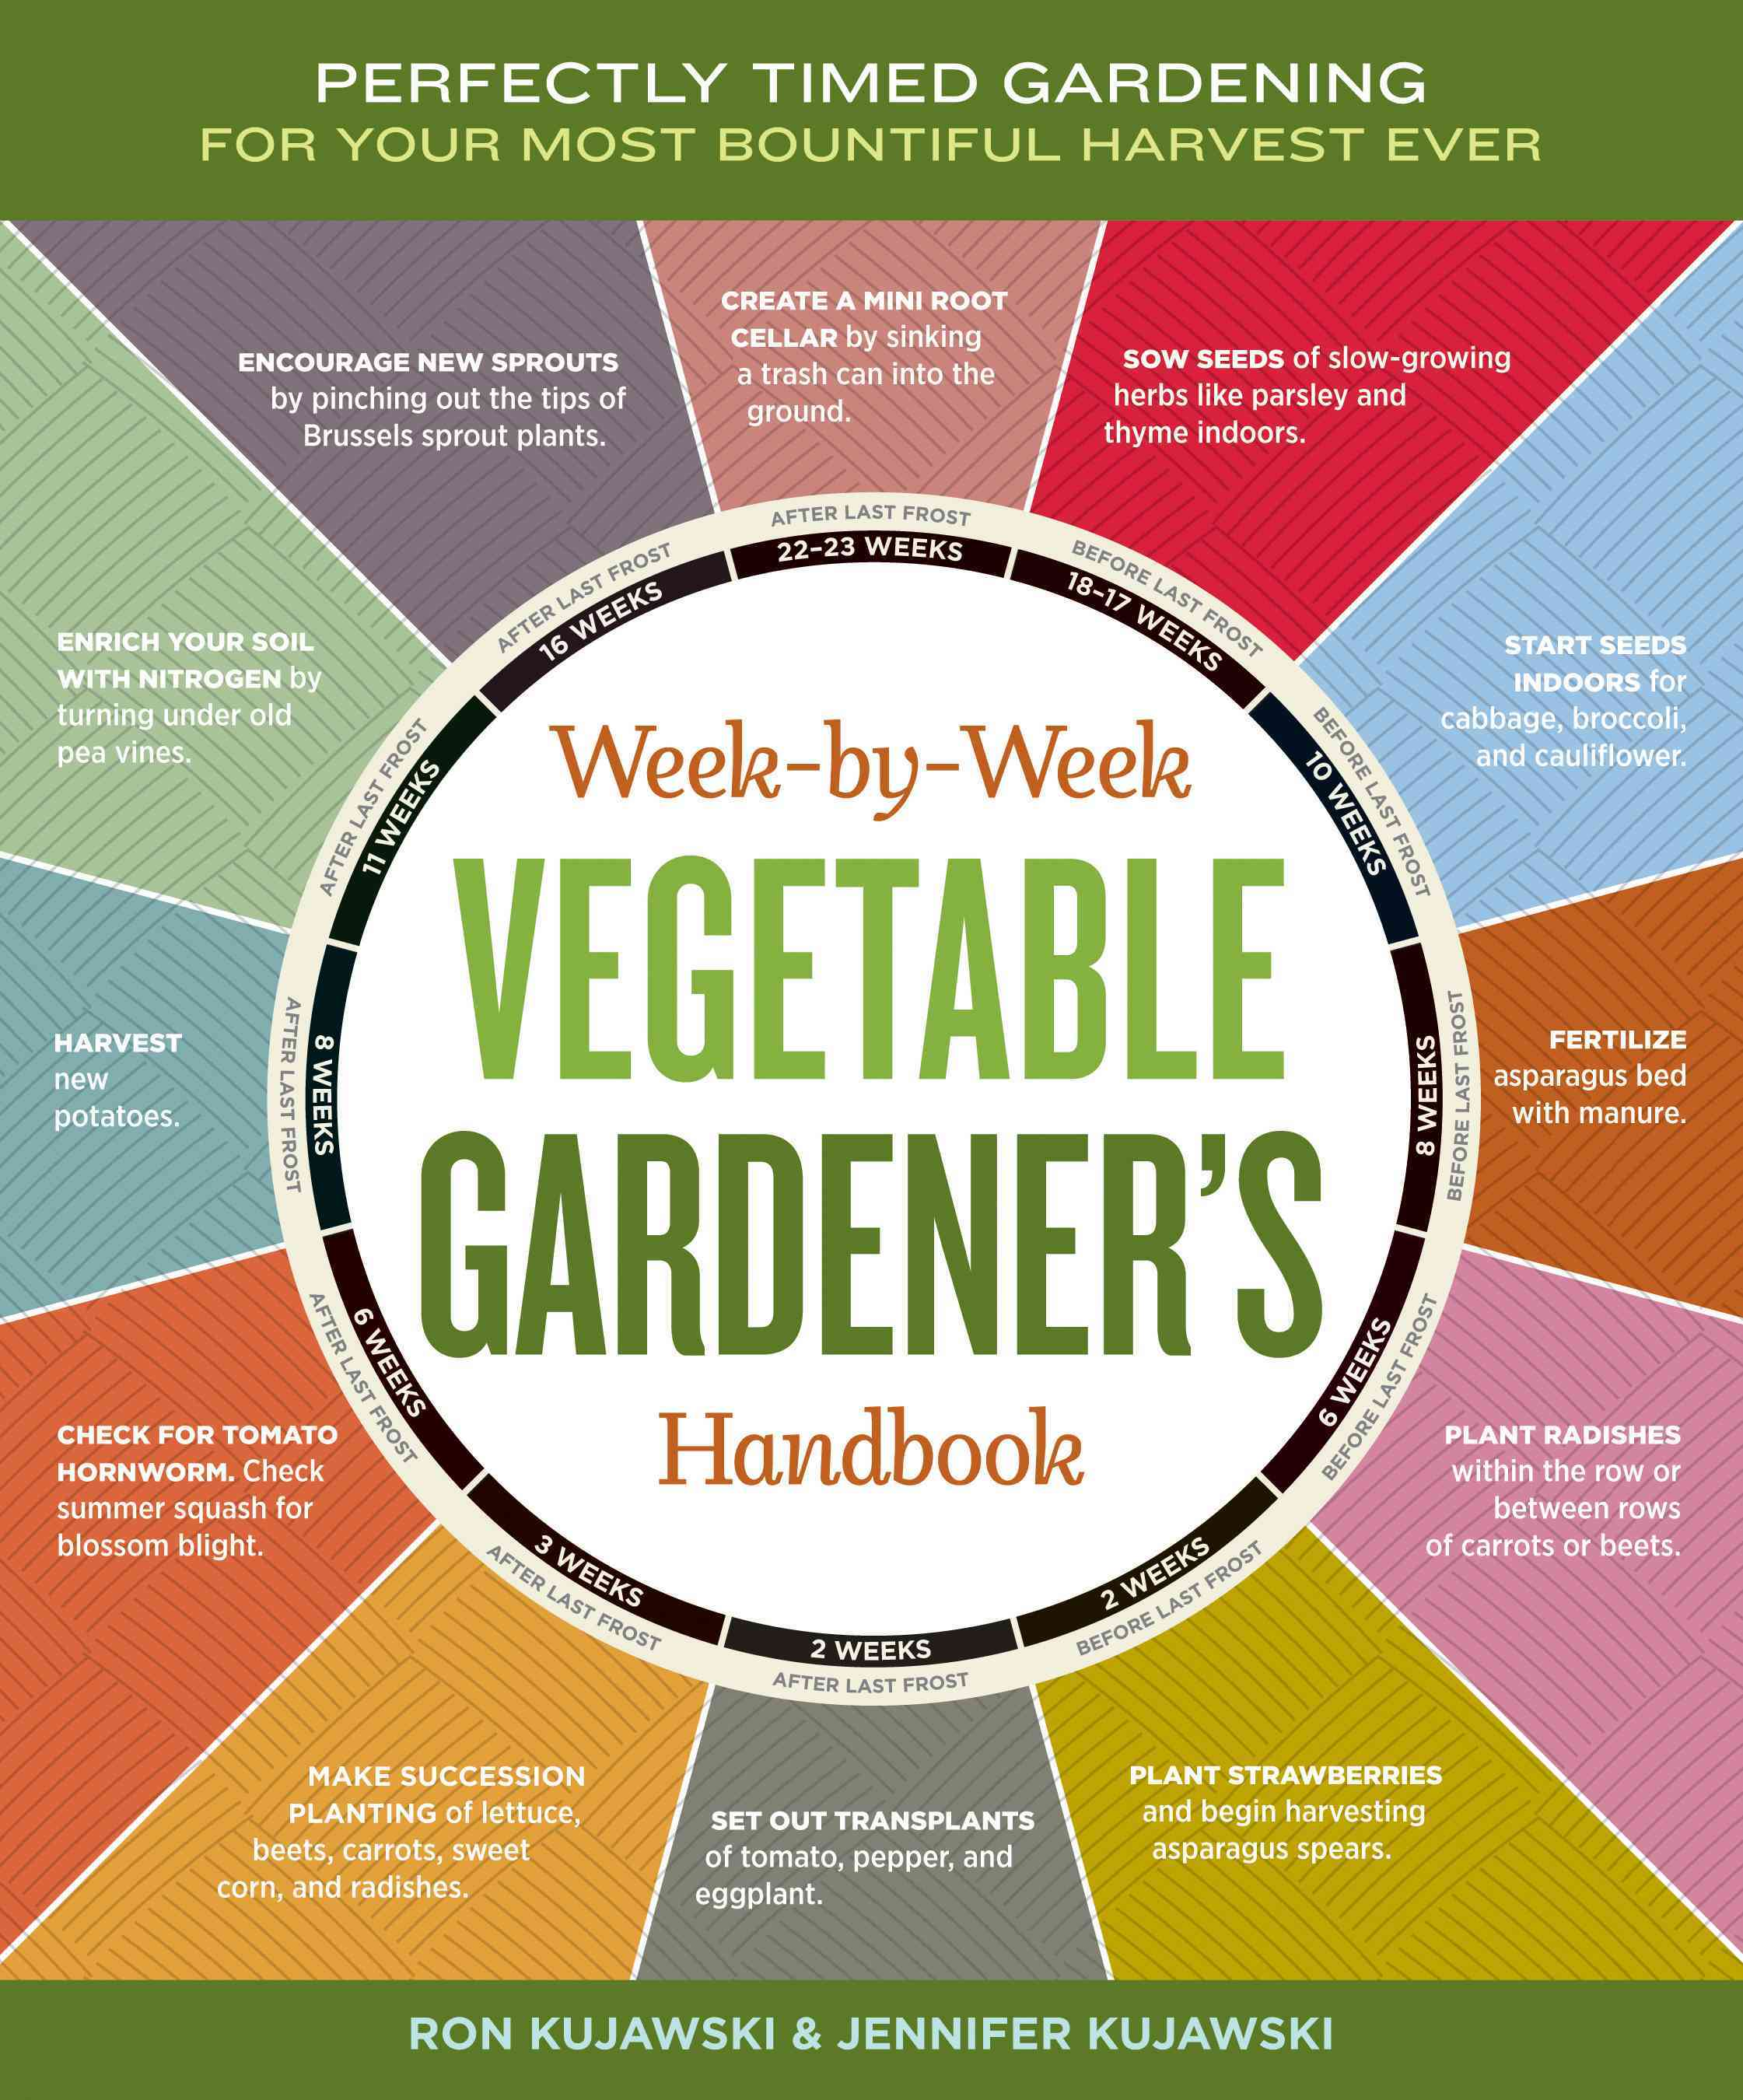 Week-by-Week Vegetable Gardener's Handbook: Perfectly Timed Gardening for your Most Bountiful Harvest Ever (Paperback)